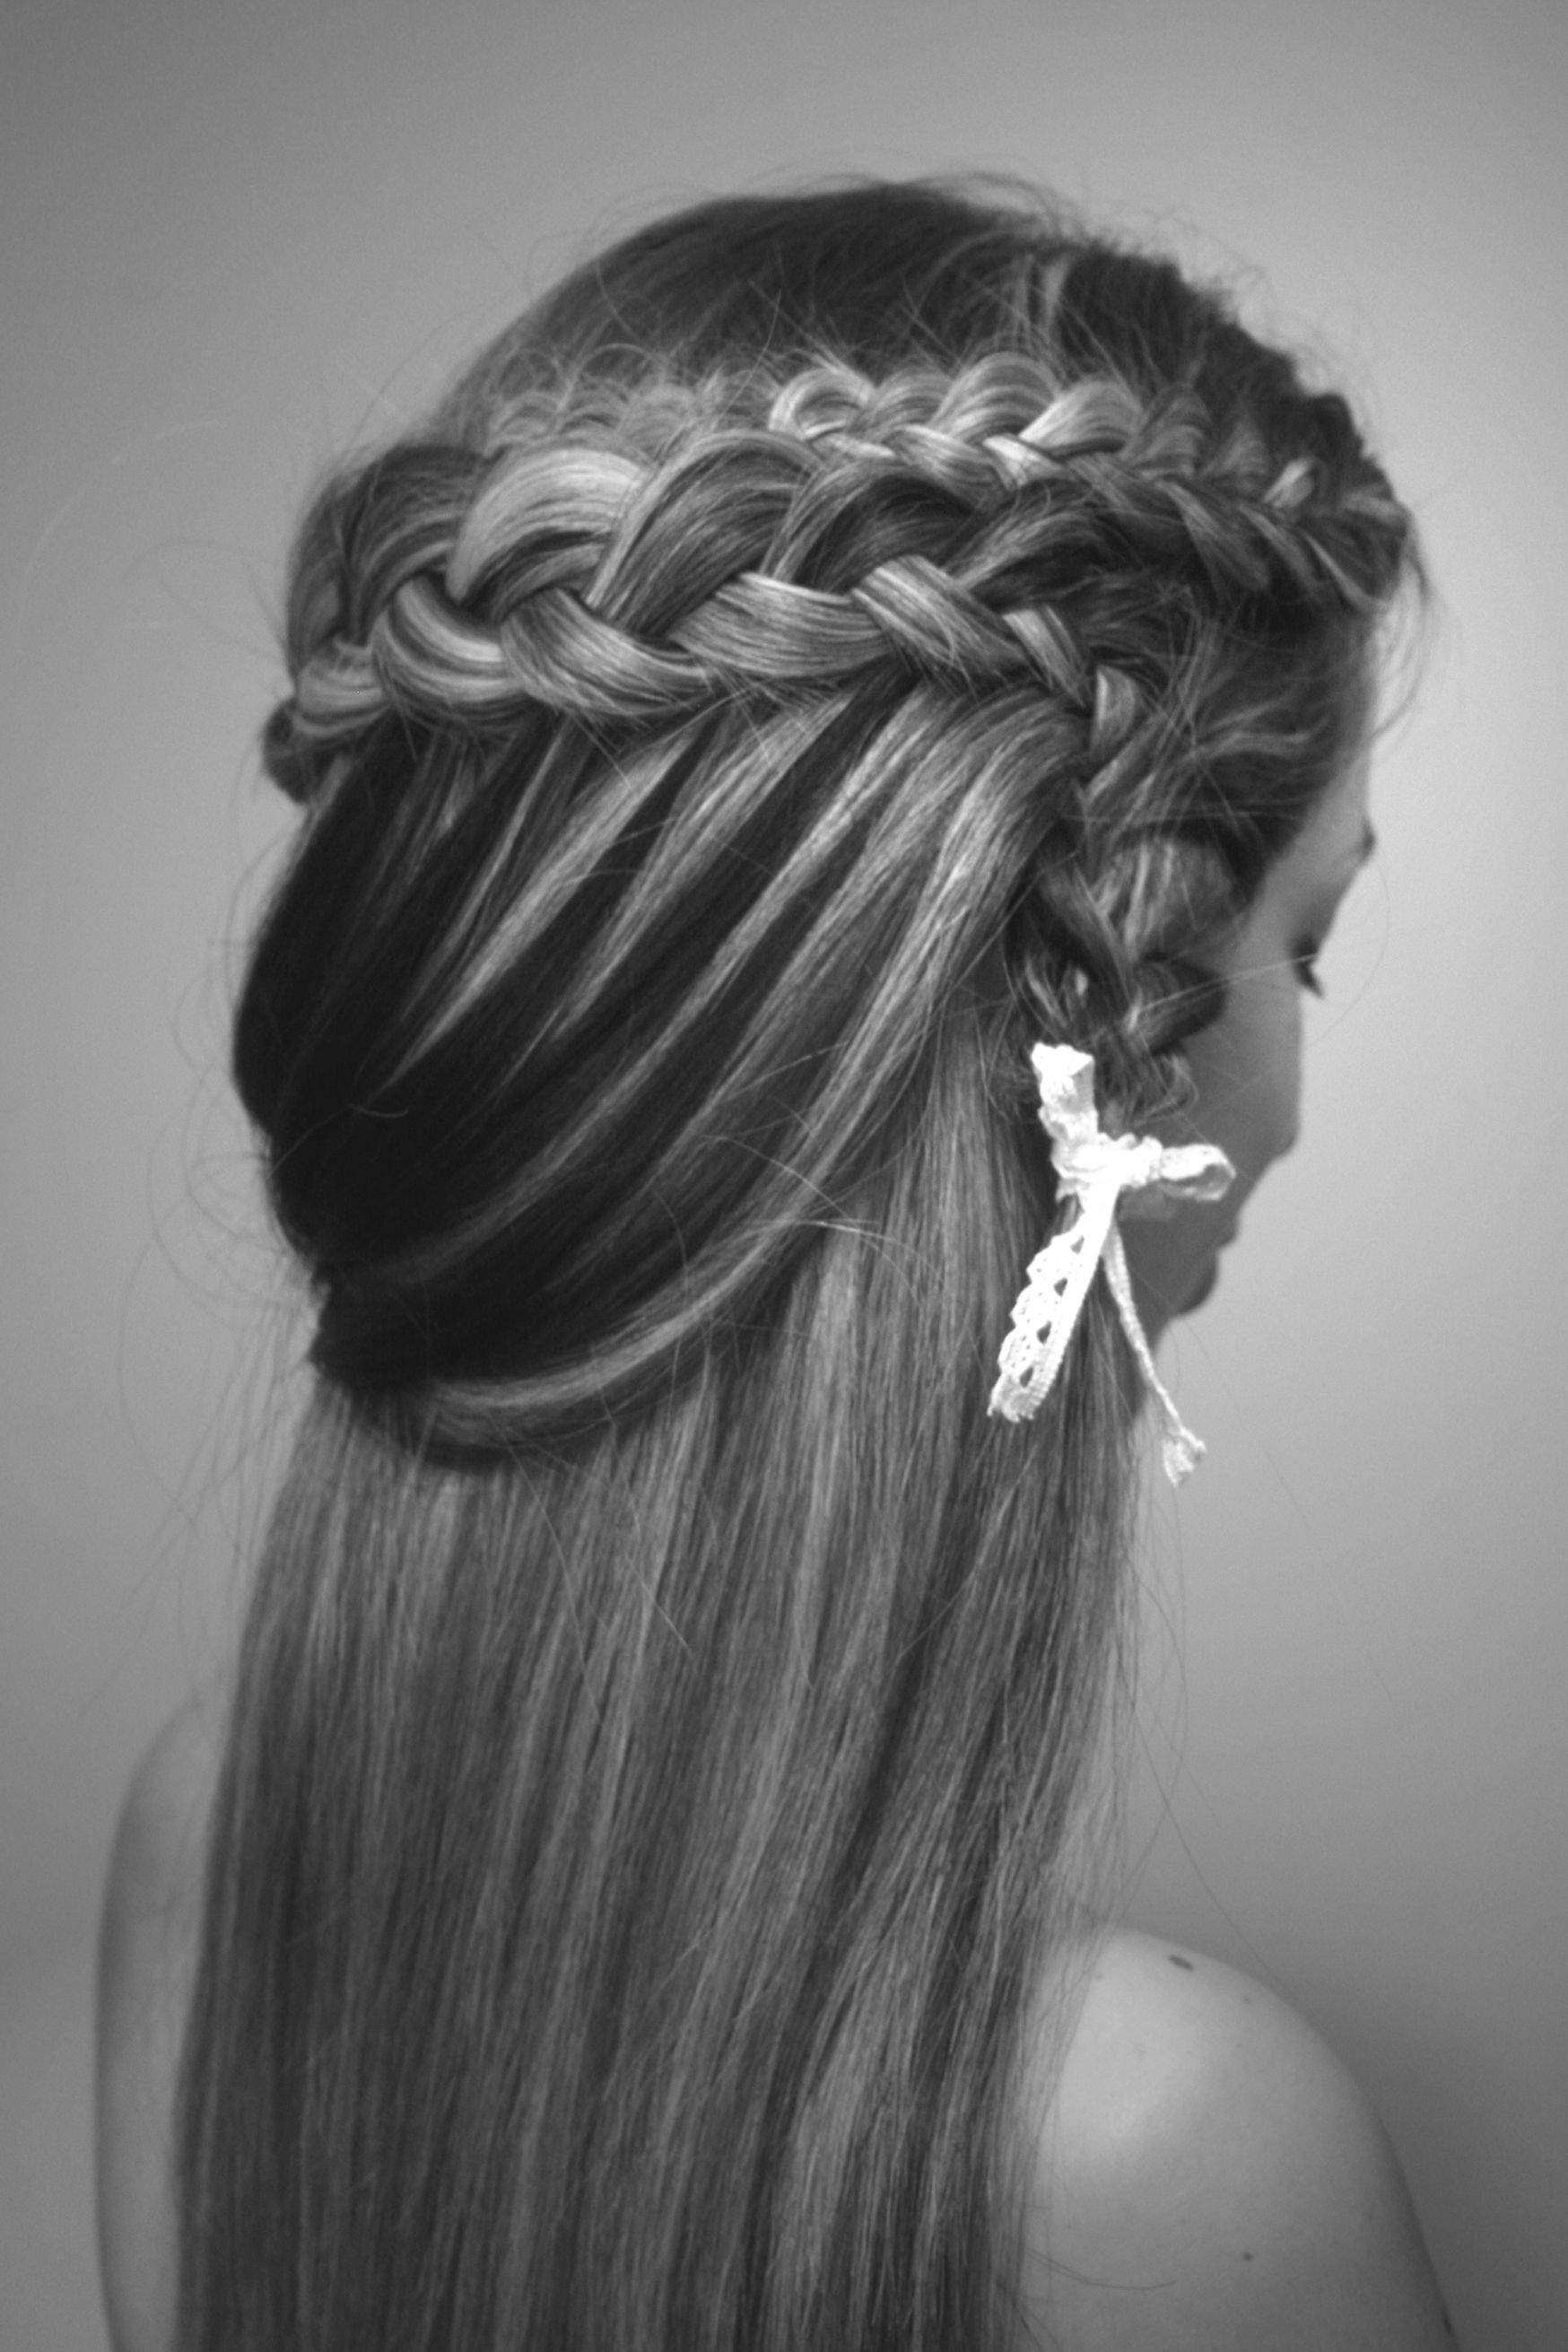 Dutch waterfall waterfall holandesa hairstyle pinterest